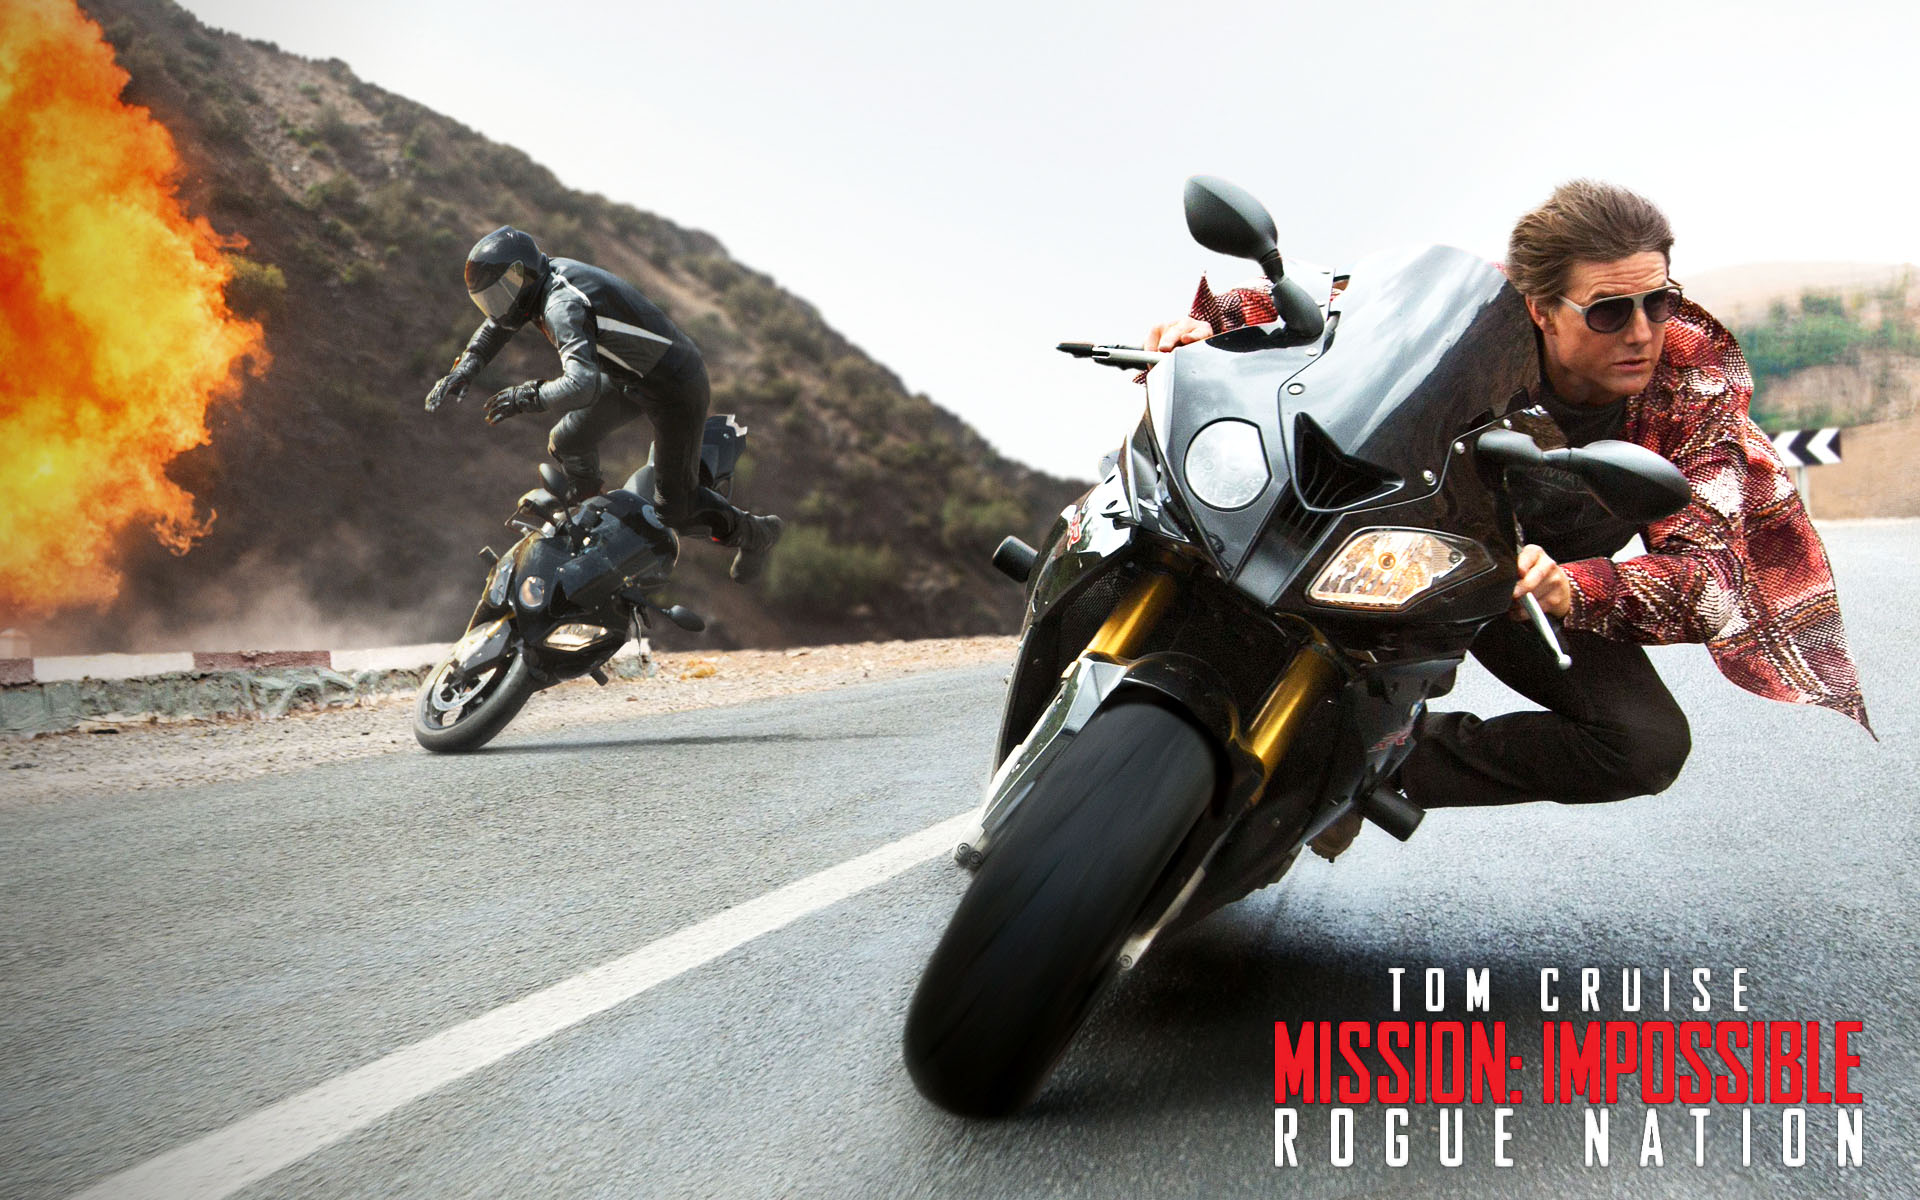 Name:  tom-cruise-mission-impossible-5-rogue-nation-2015-bmw-s1000rr-motorbike-wallpaper.jpg Views: 310 Size:  425.9 KB